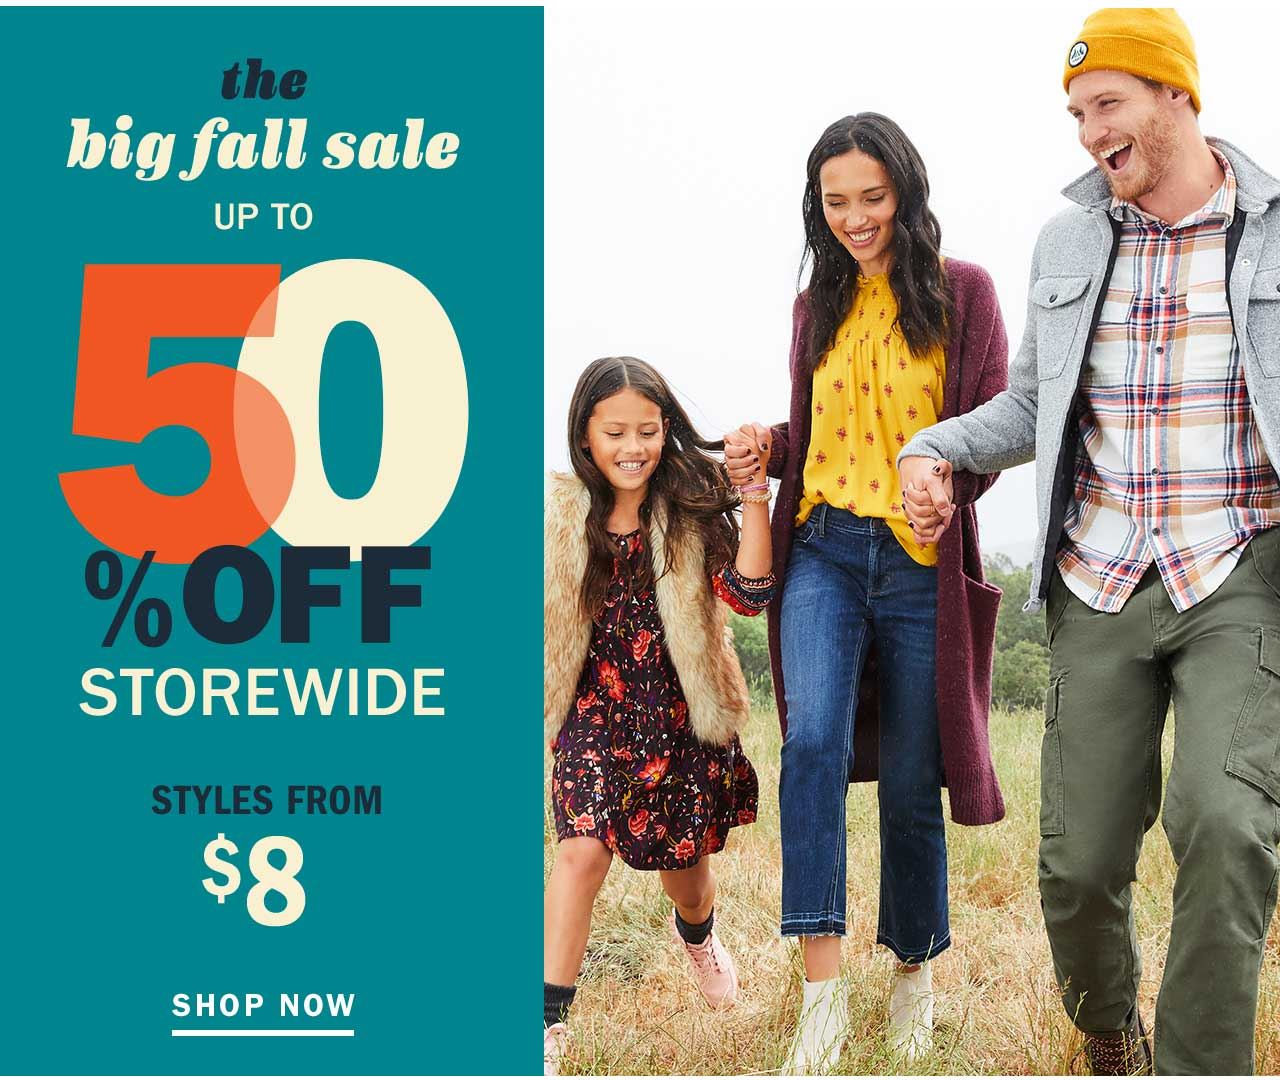 the big fall sale UP TO 50% OFF STOREWIDE | STYLES FROM $8 | SHOP NOW